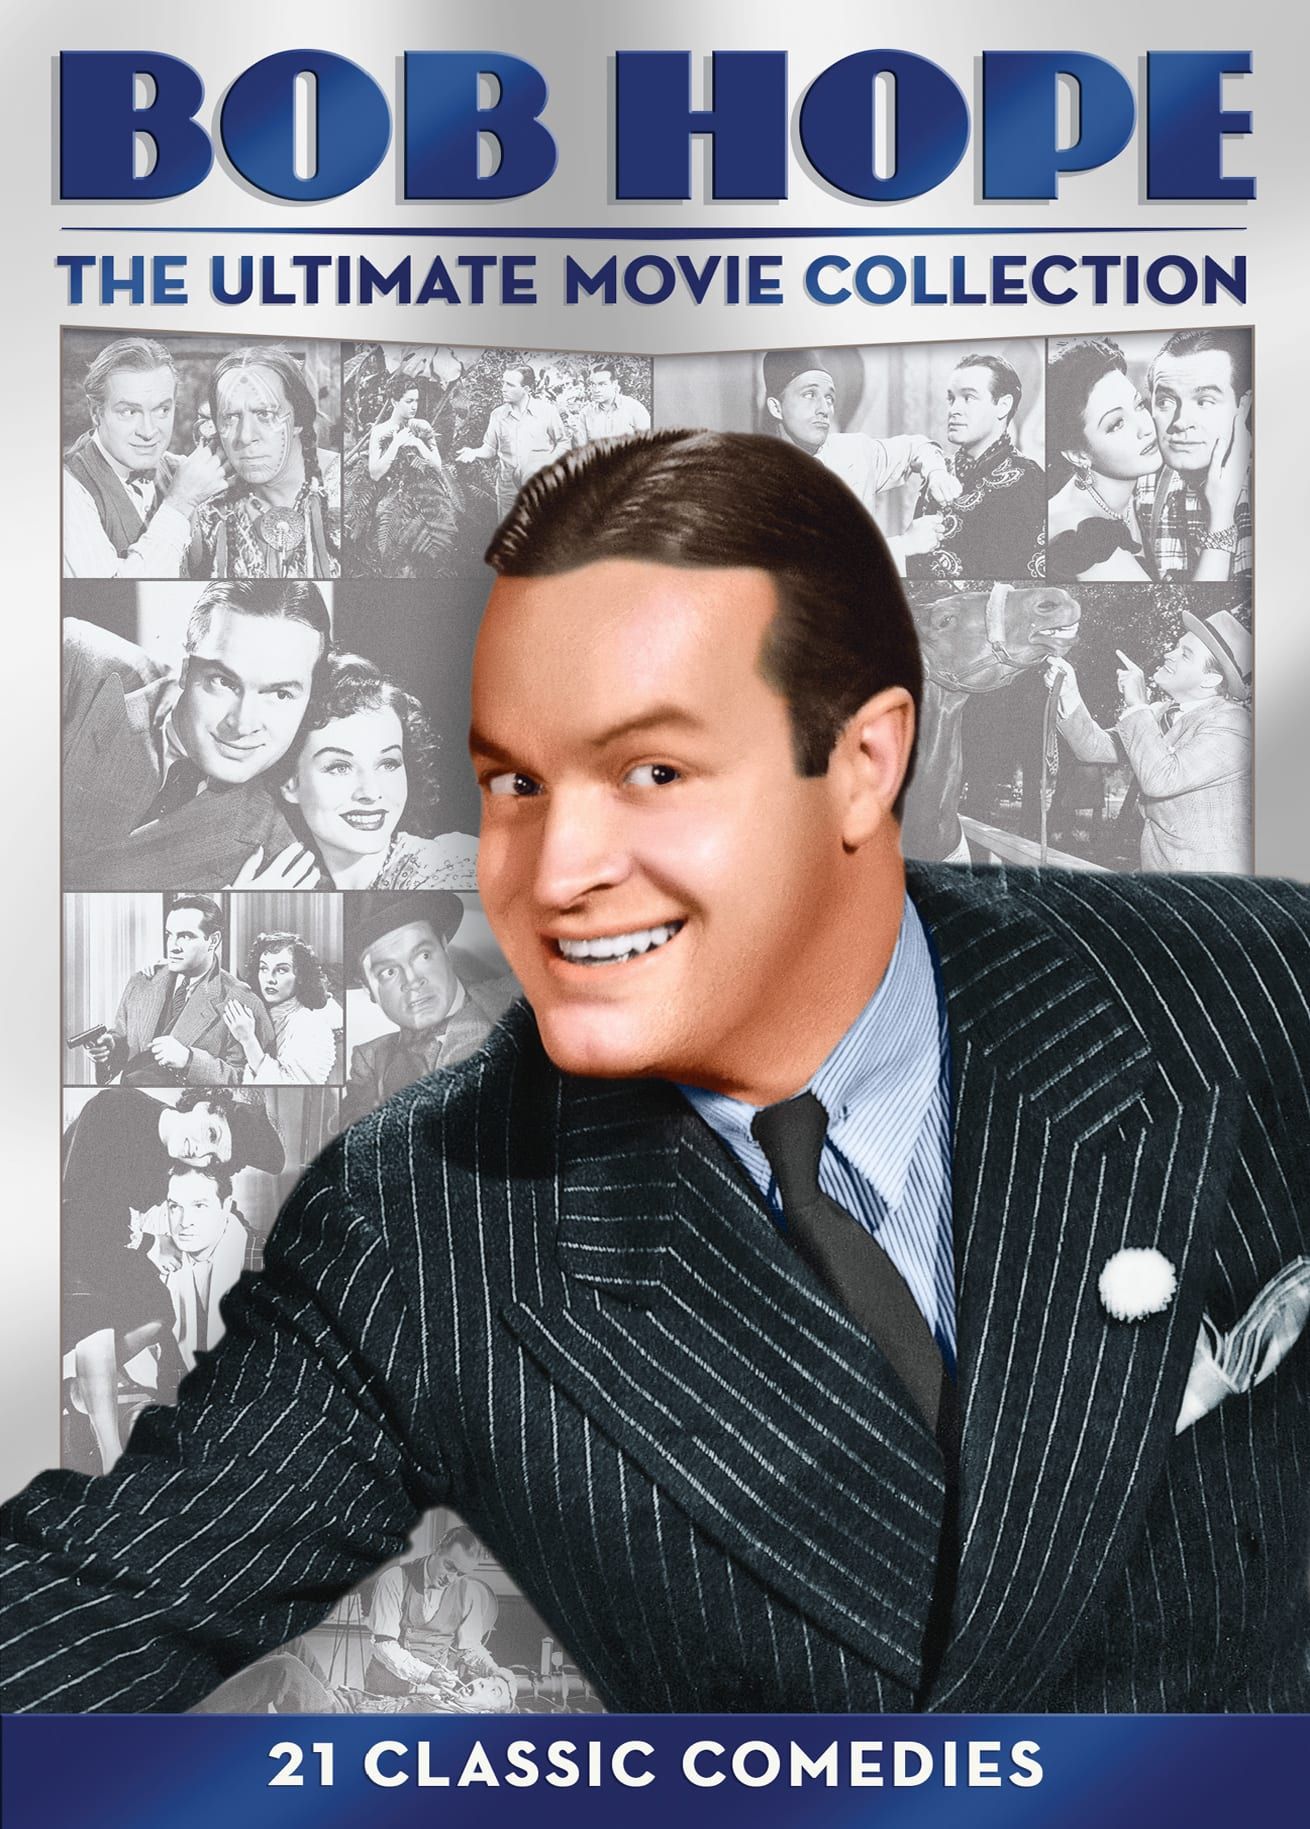 Bob Hope: The Ultimate Movie Collection (Box Set) [DVD]